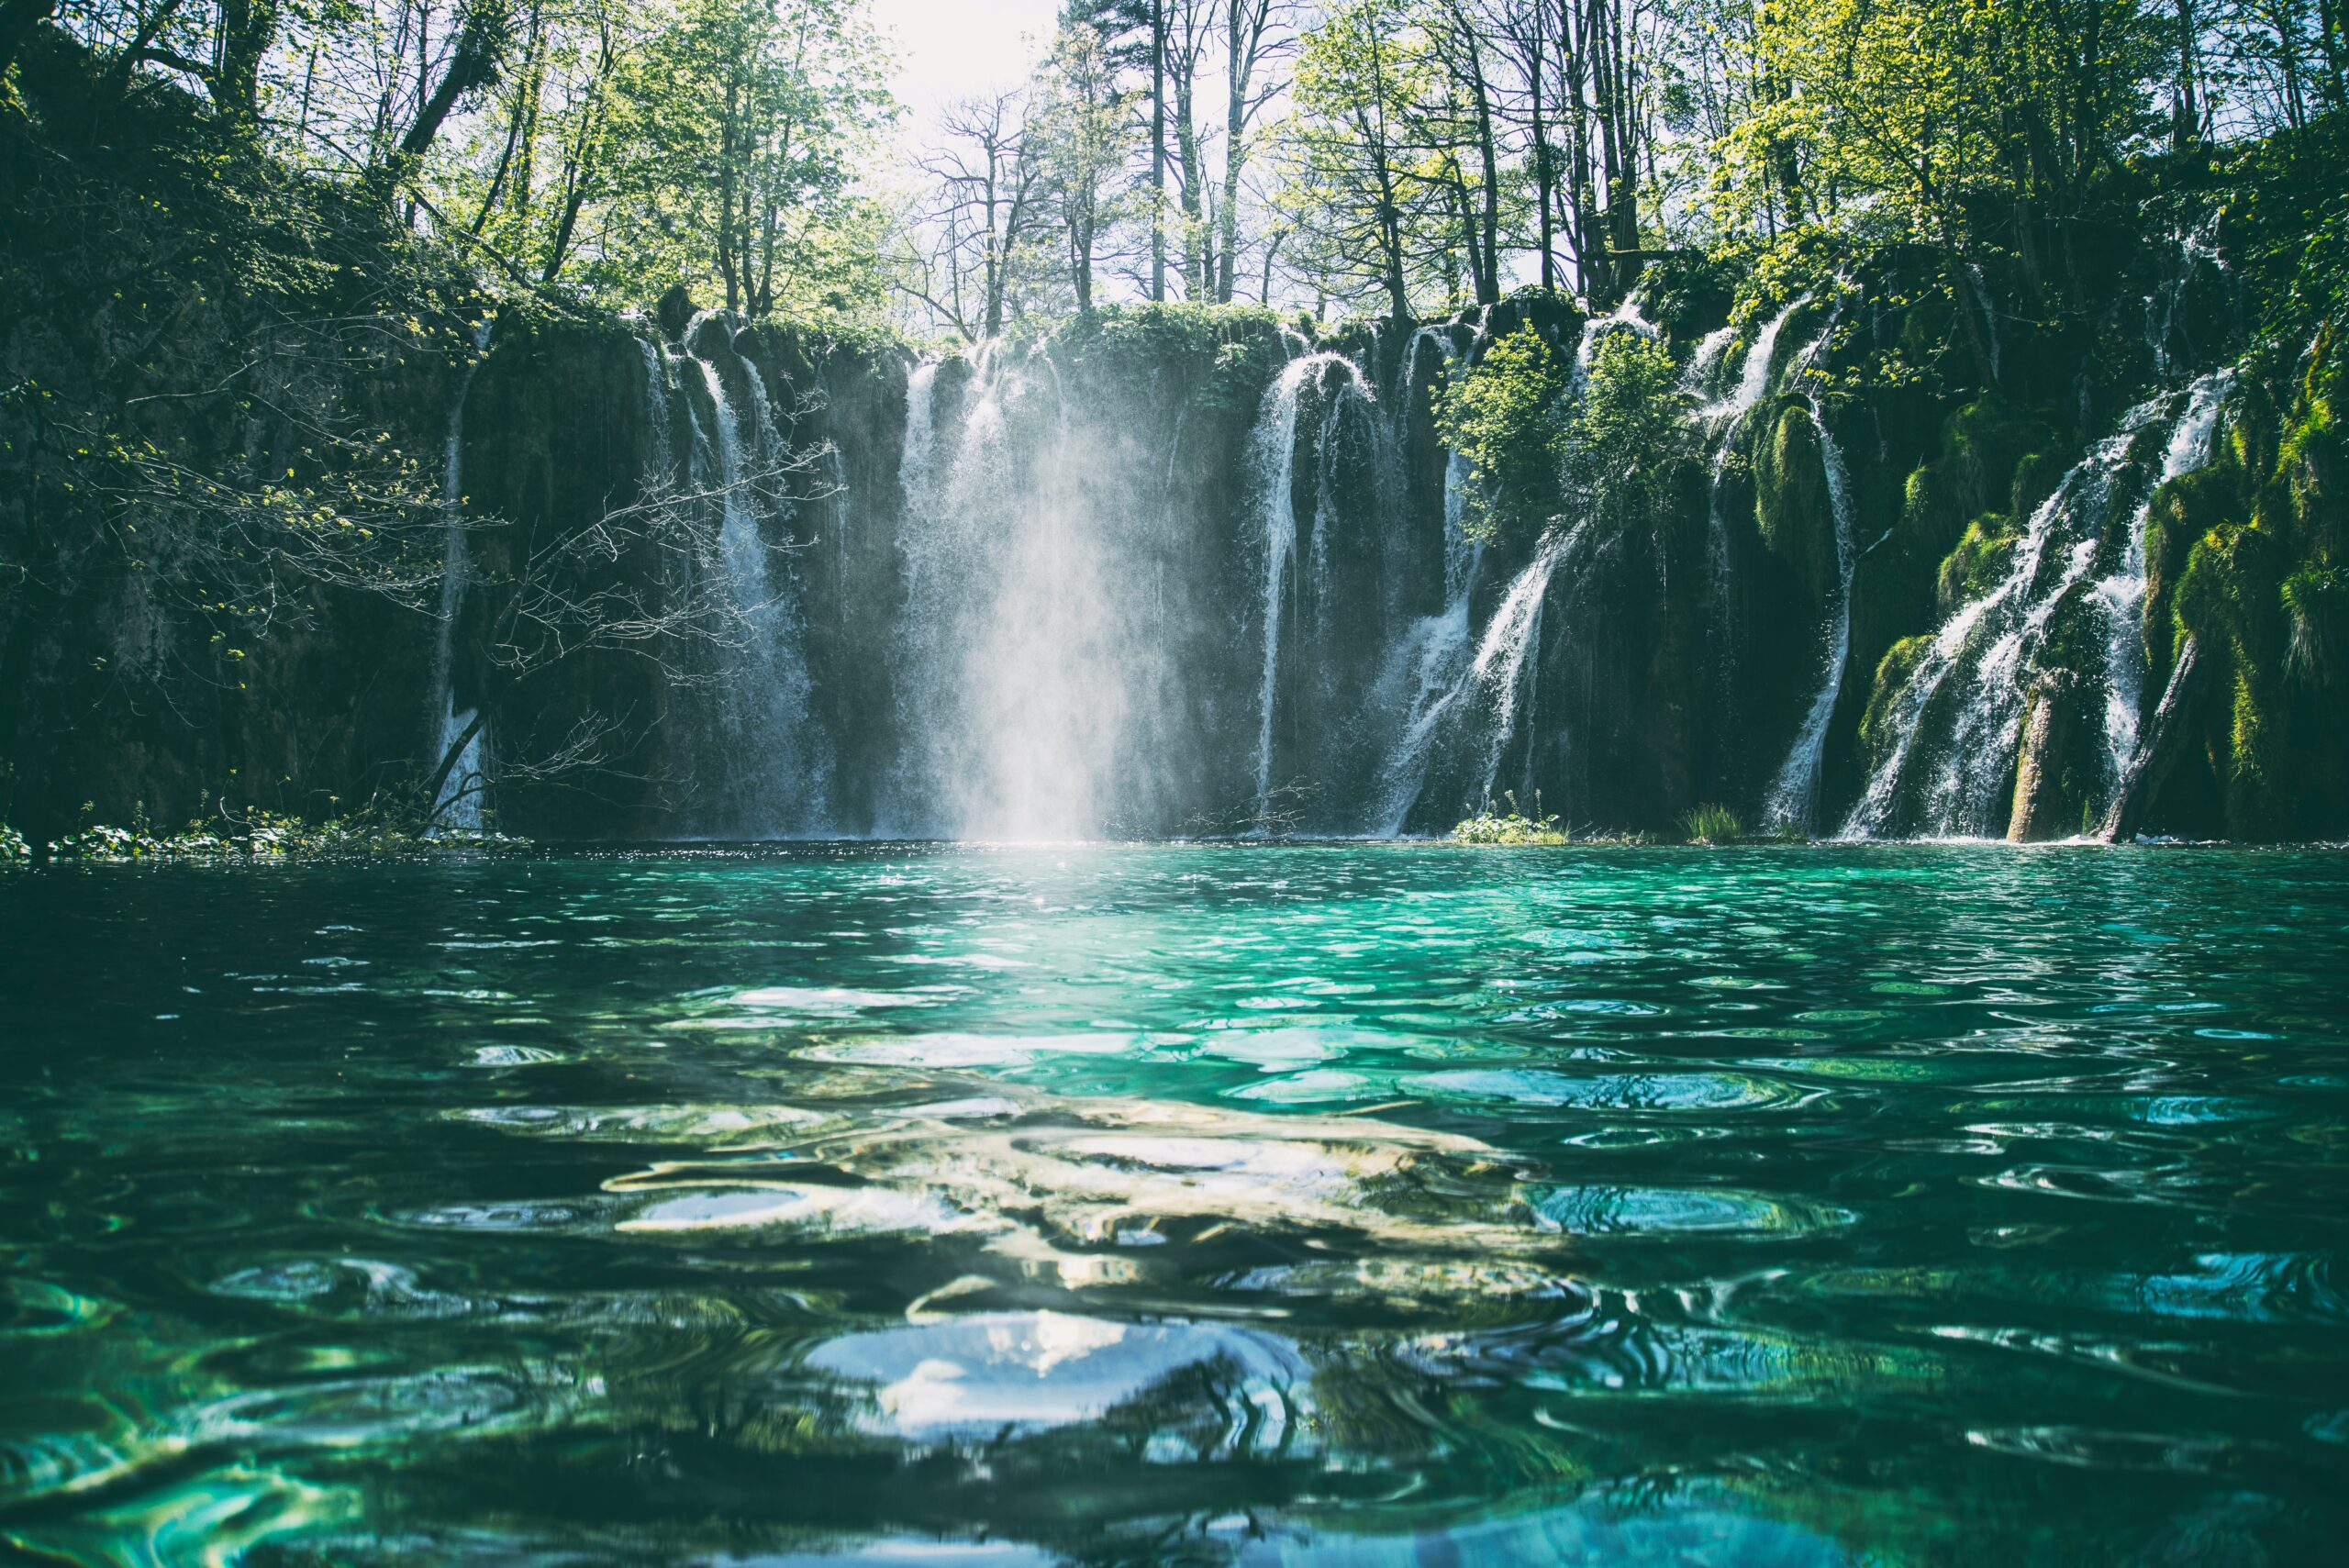 Visit The Plitvice Lakes On Our 6 Day Split, Dubrovnik & Plitvice Lakes Tour Package